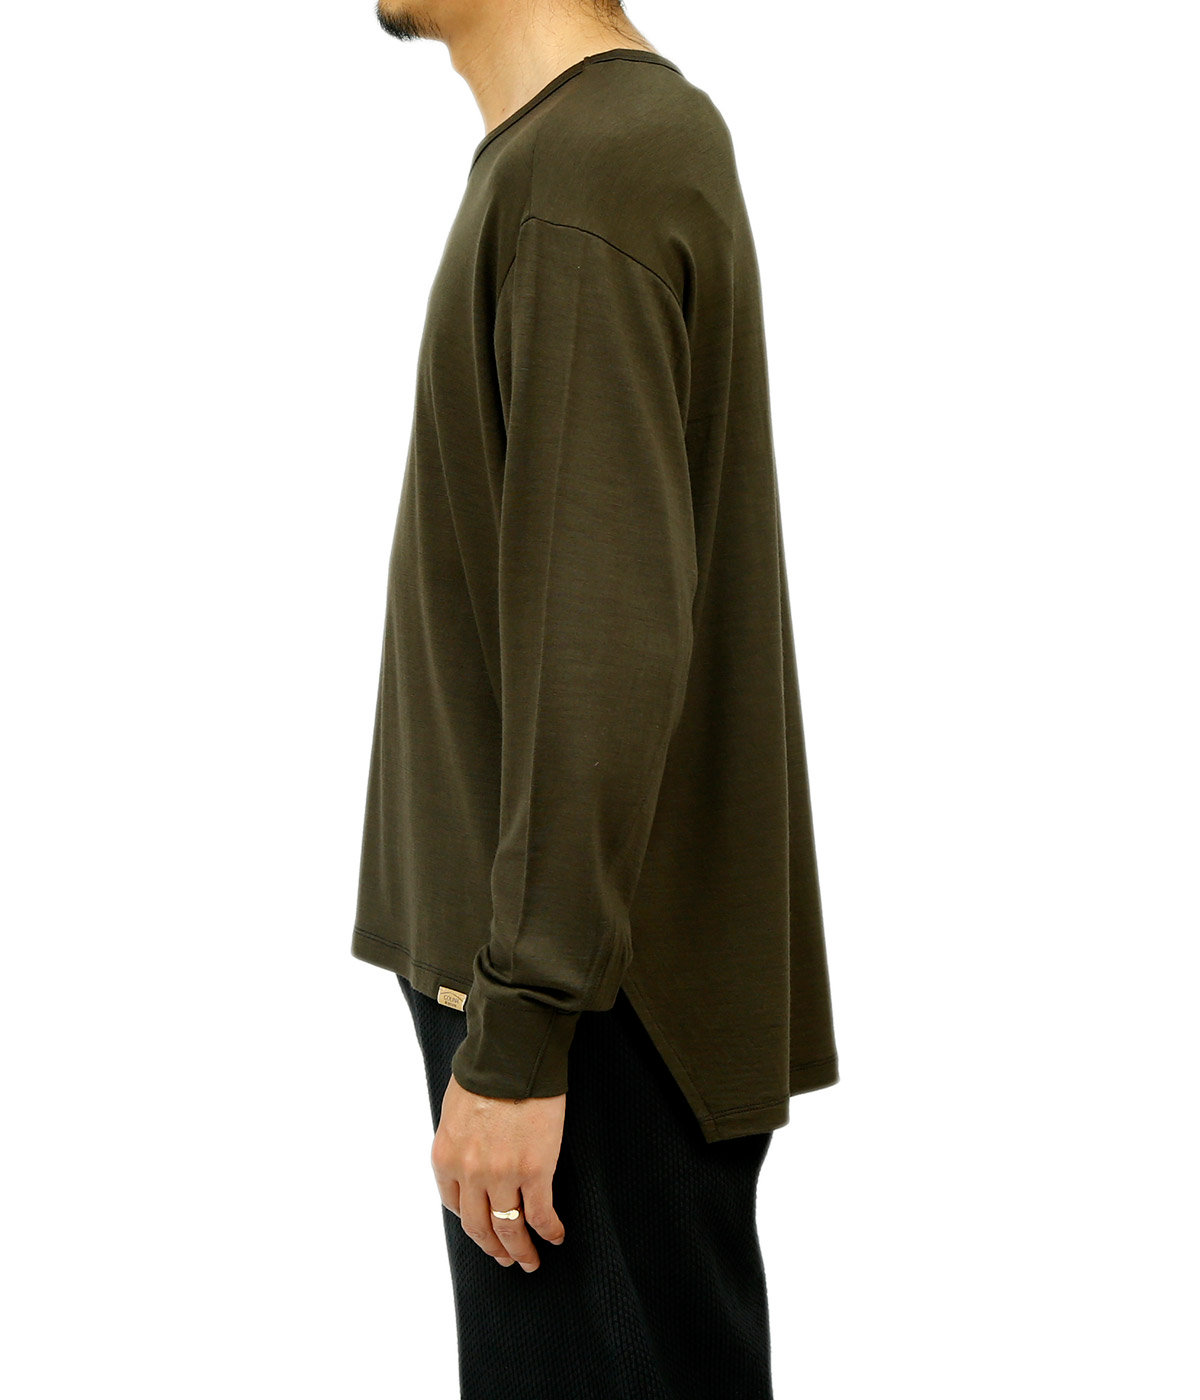 Super 120s Washable Wool Long Tee